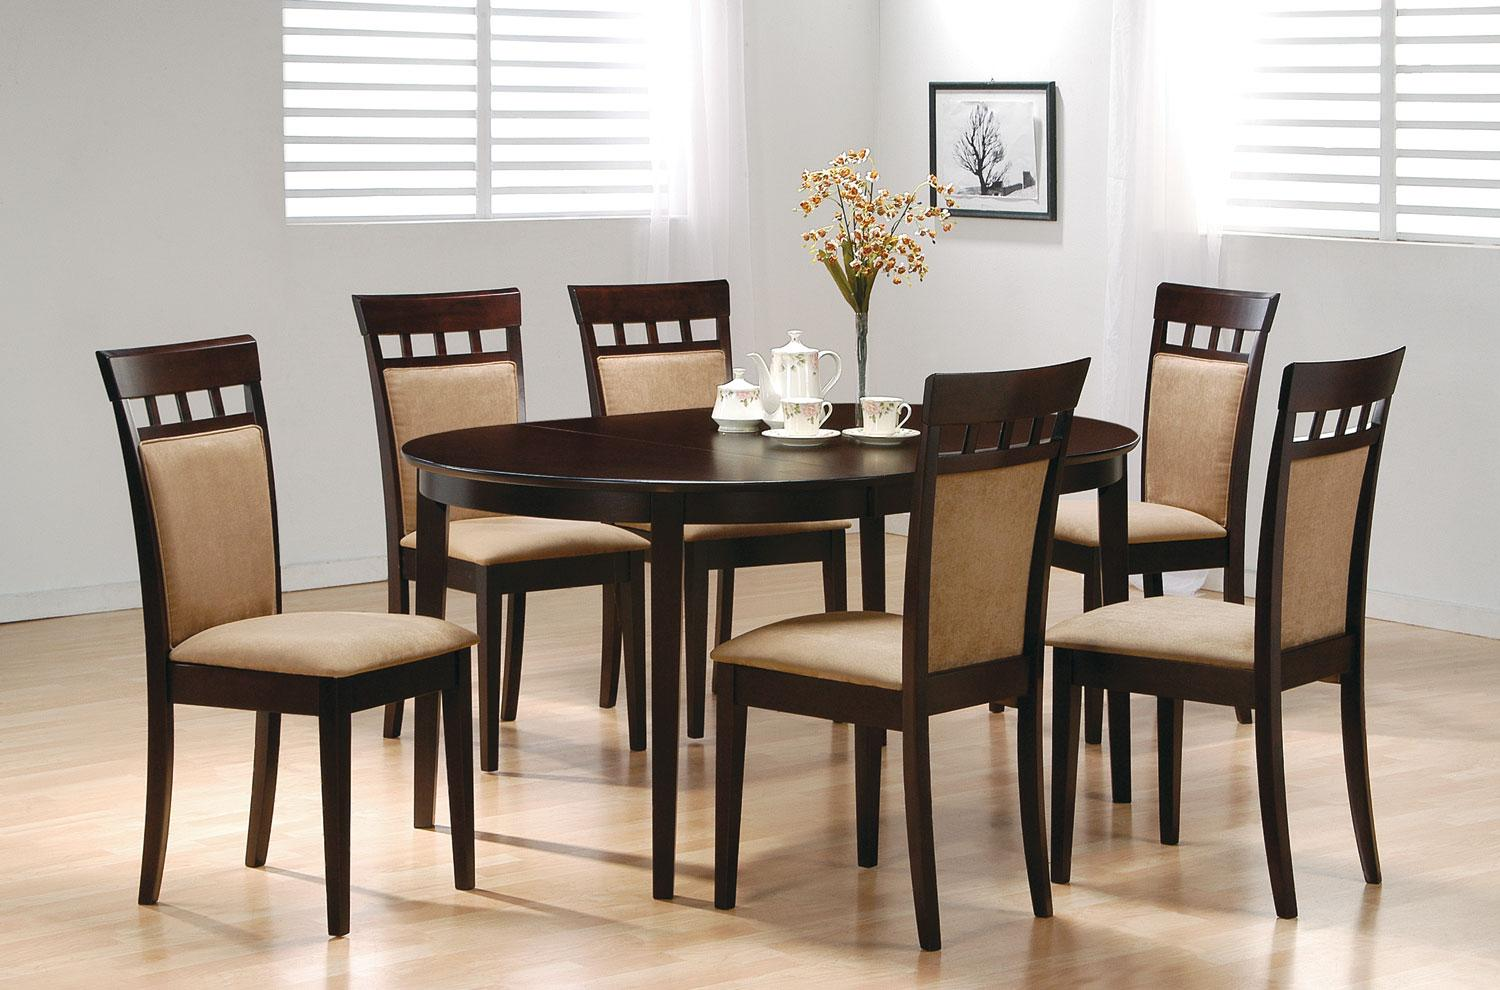 Mix U0026 Match 5 PC Dining Set Table, 4 Chairs Furniture Stores